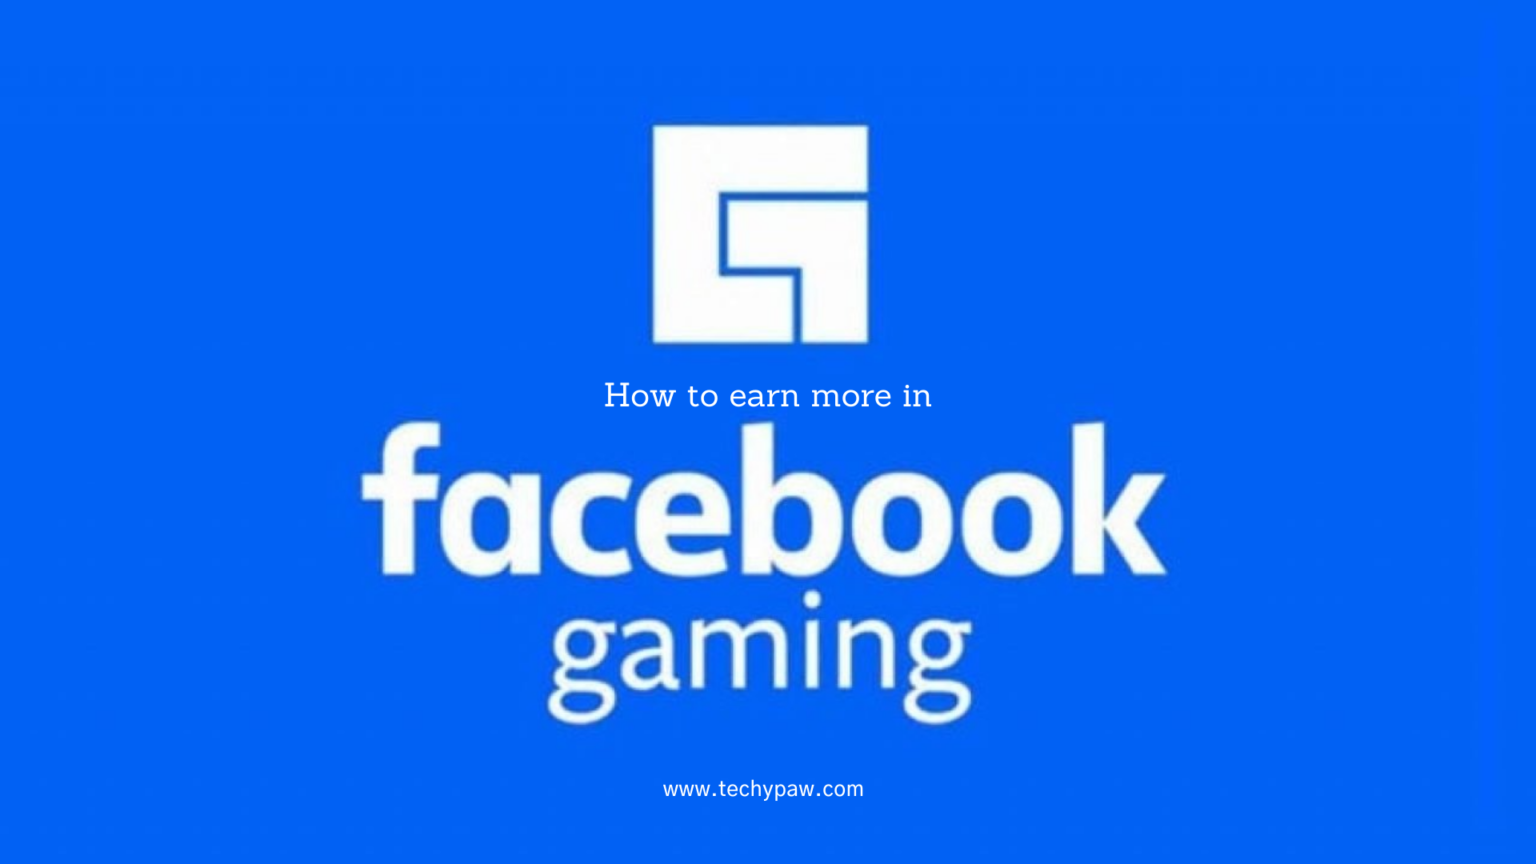 How To Earn More In Facebook Gaming in 2021?